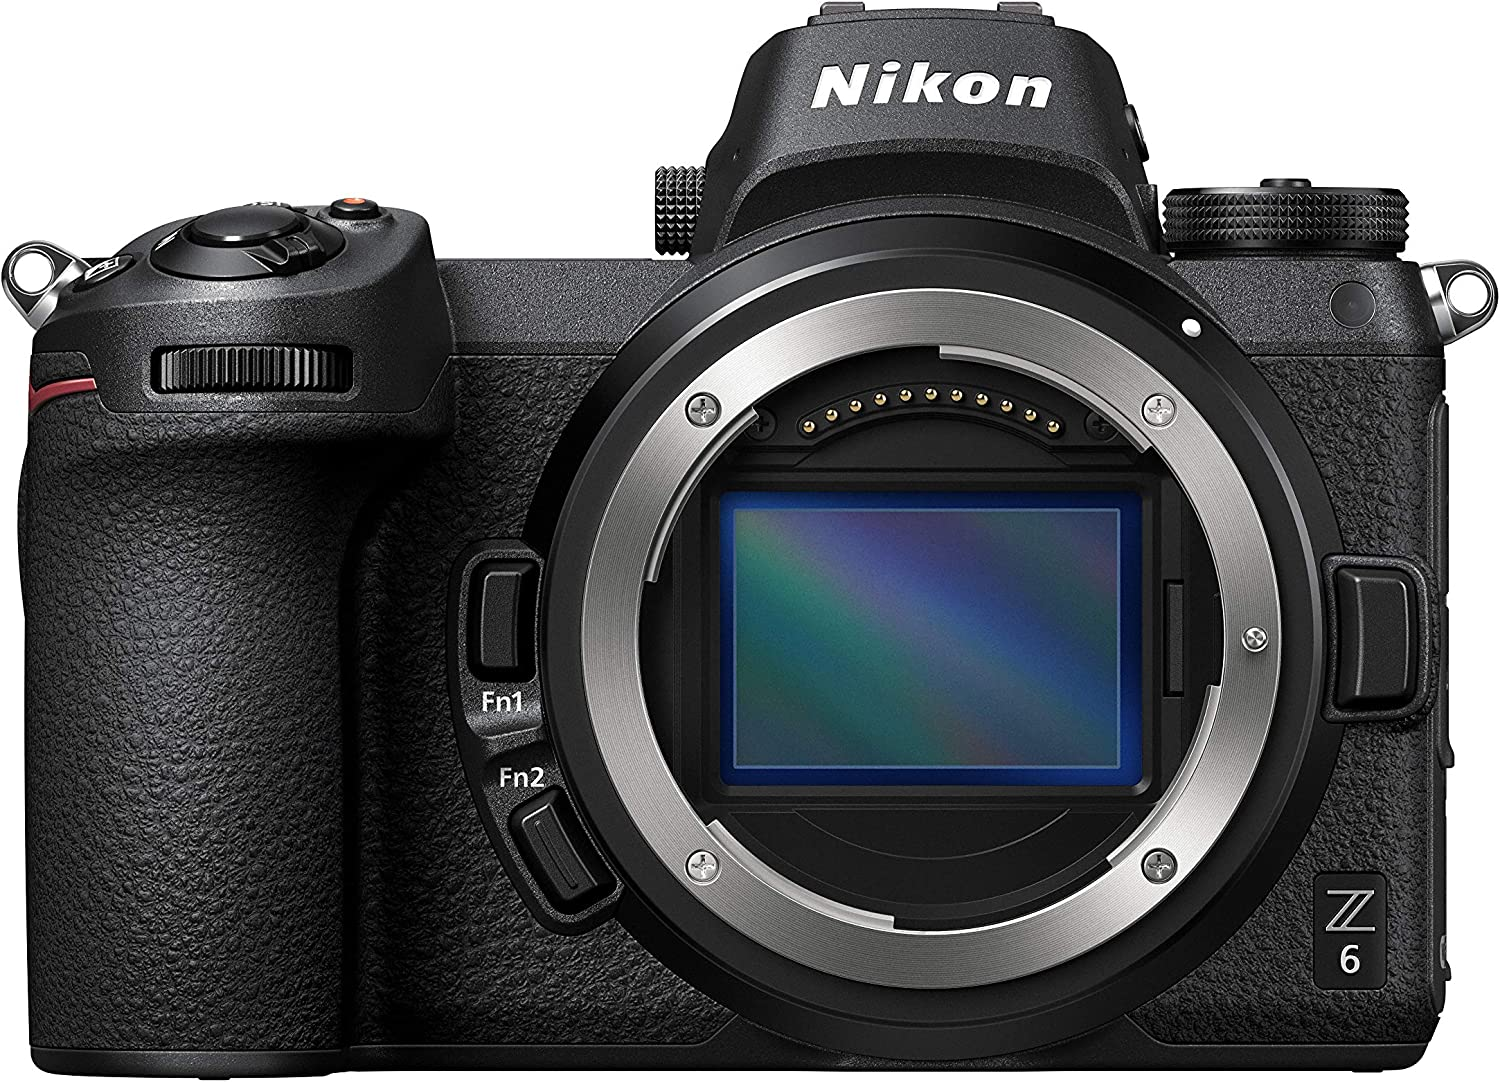 Nikon Z6 has a really good electronic viewfinder which is good for concert photography